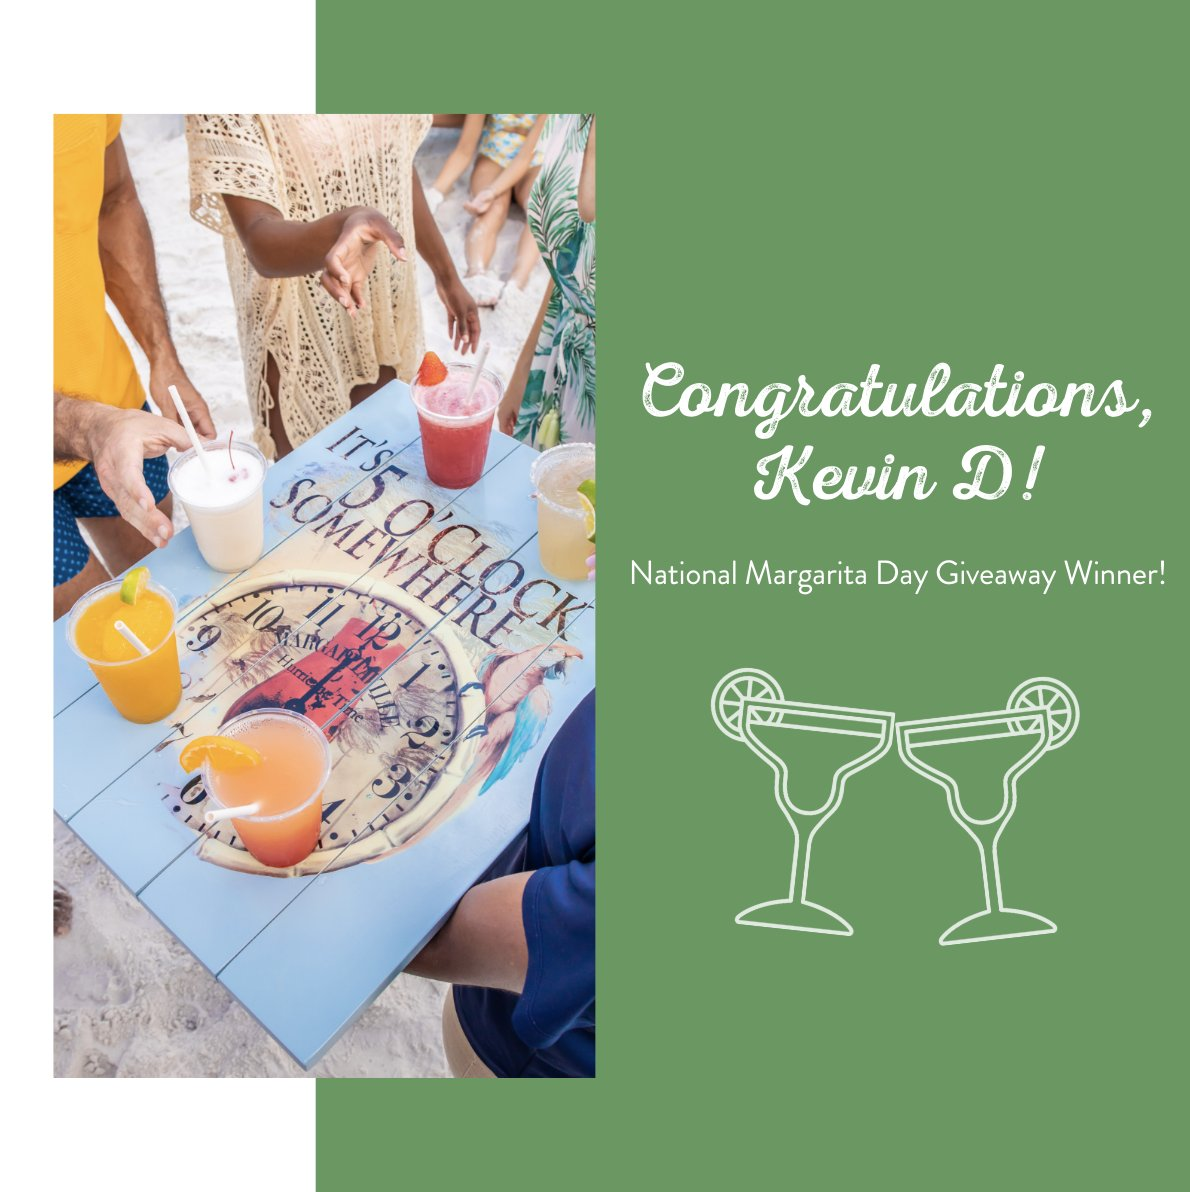 Congratulations to Kevin Dicey on winning the #NationalMargaritaDay giveaway on our FB! Follow us so you're the first to know when we announce the next giveaway! 🌴🦜